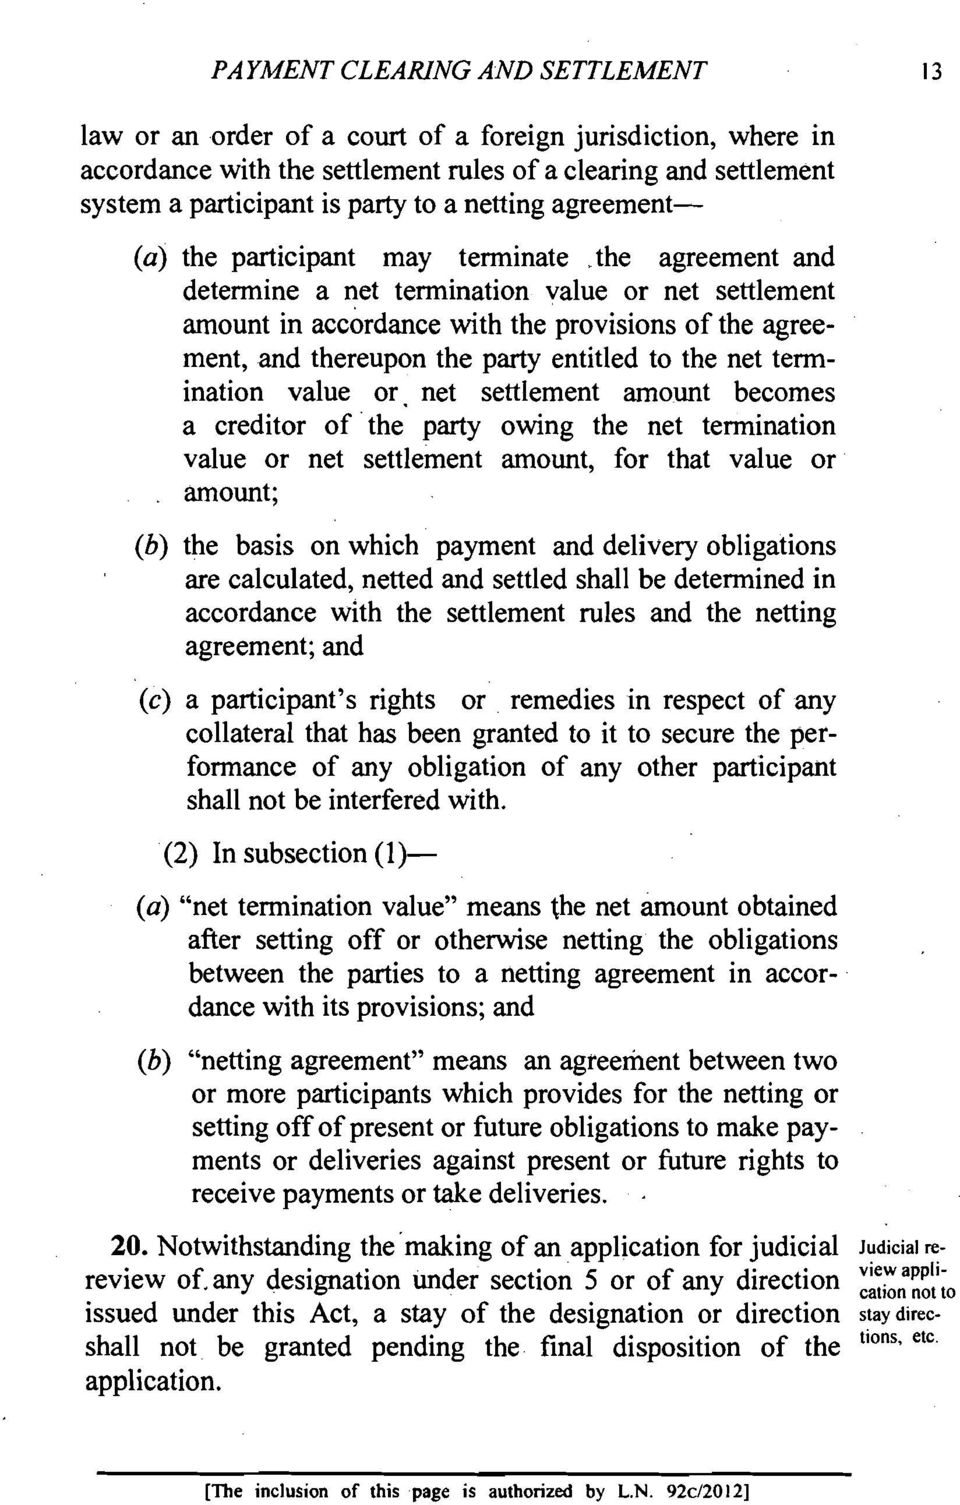 the agreement and determine a net termination value or net settlement amount in accordance with the provisions of the agreement, and thereupon the party entitled to the net termination value or.